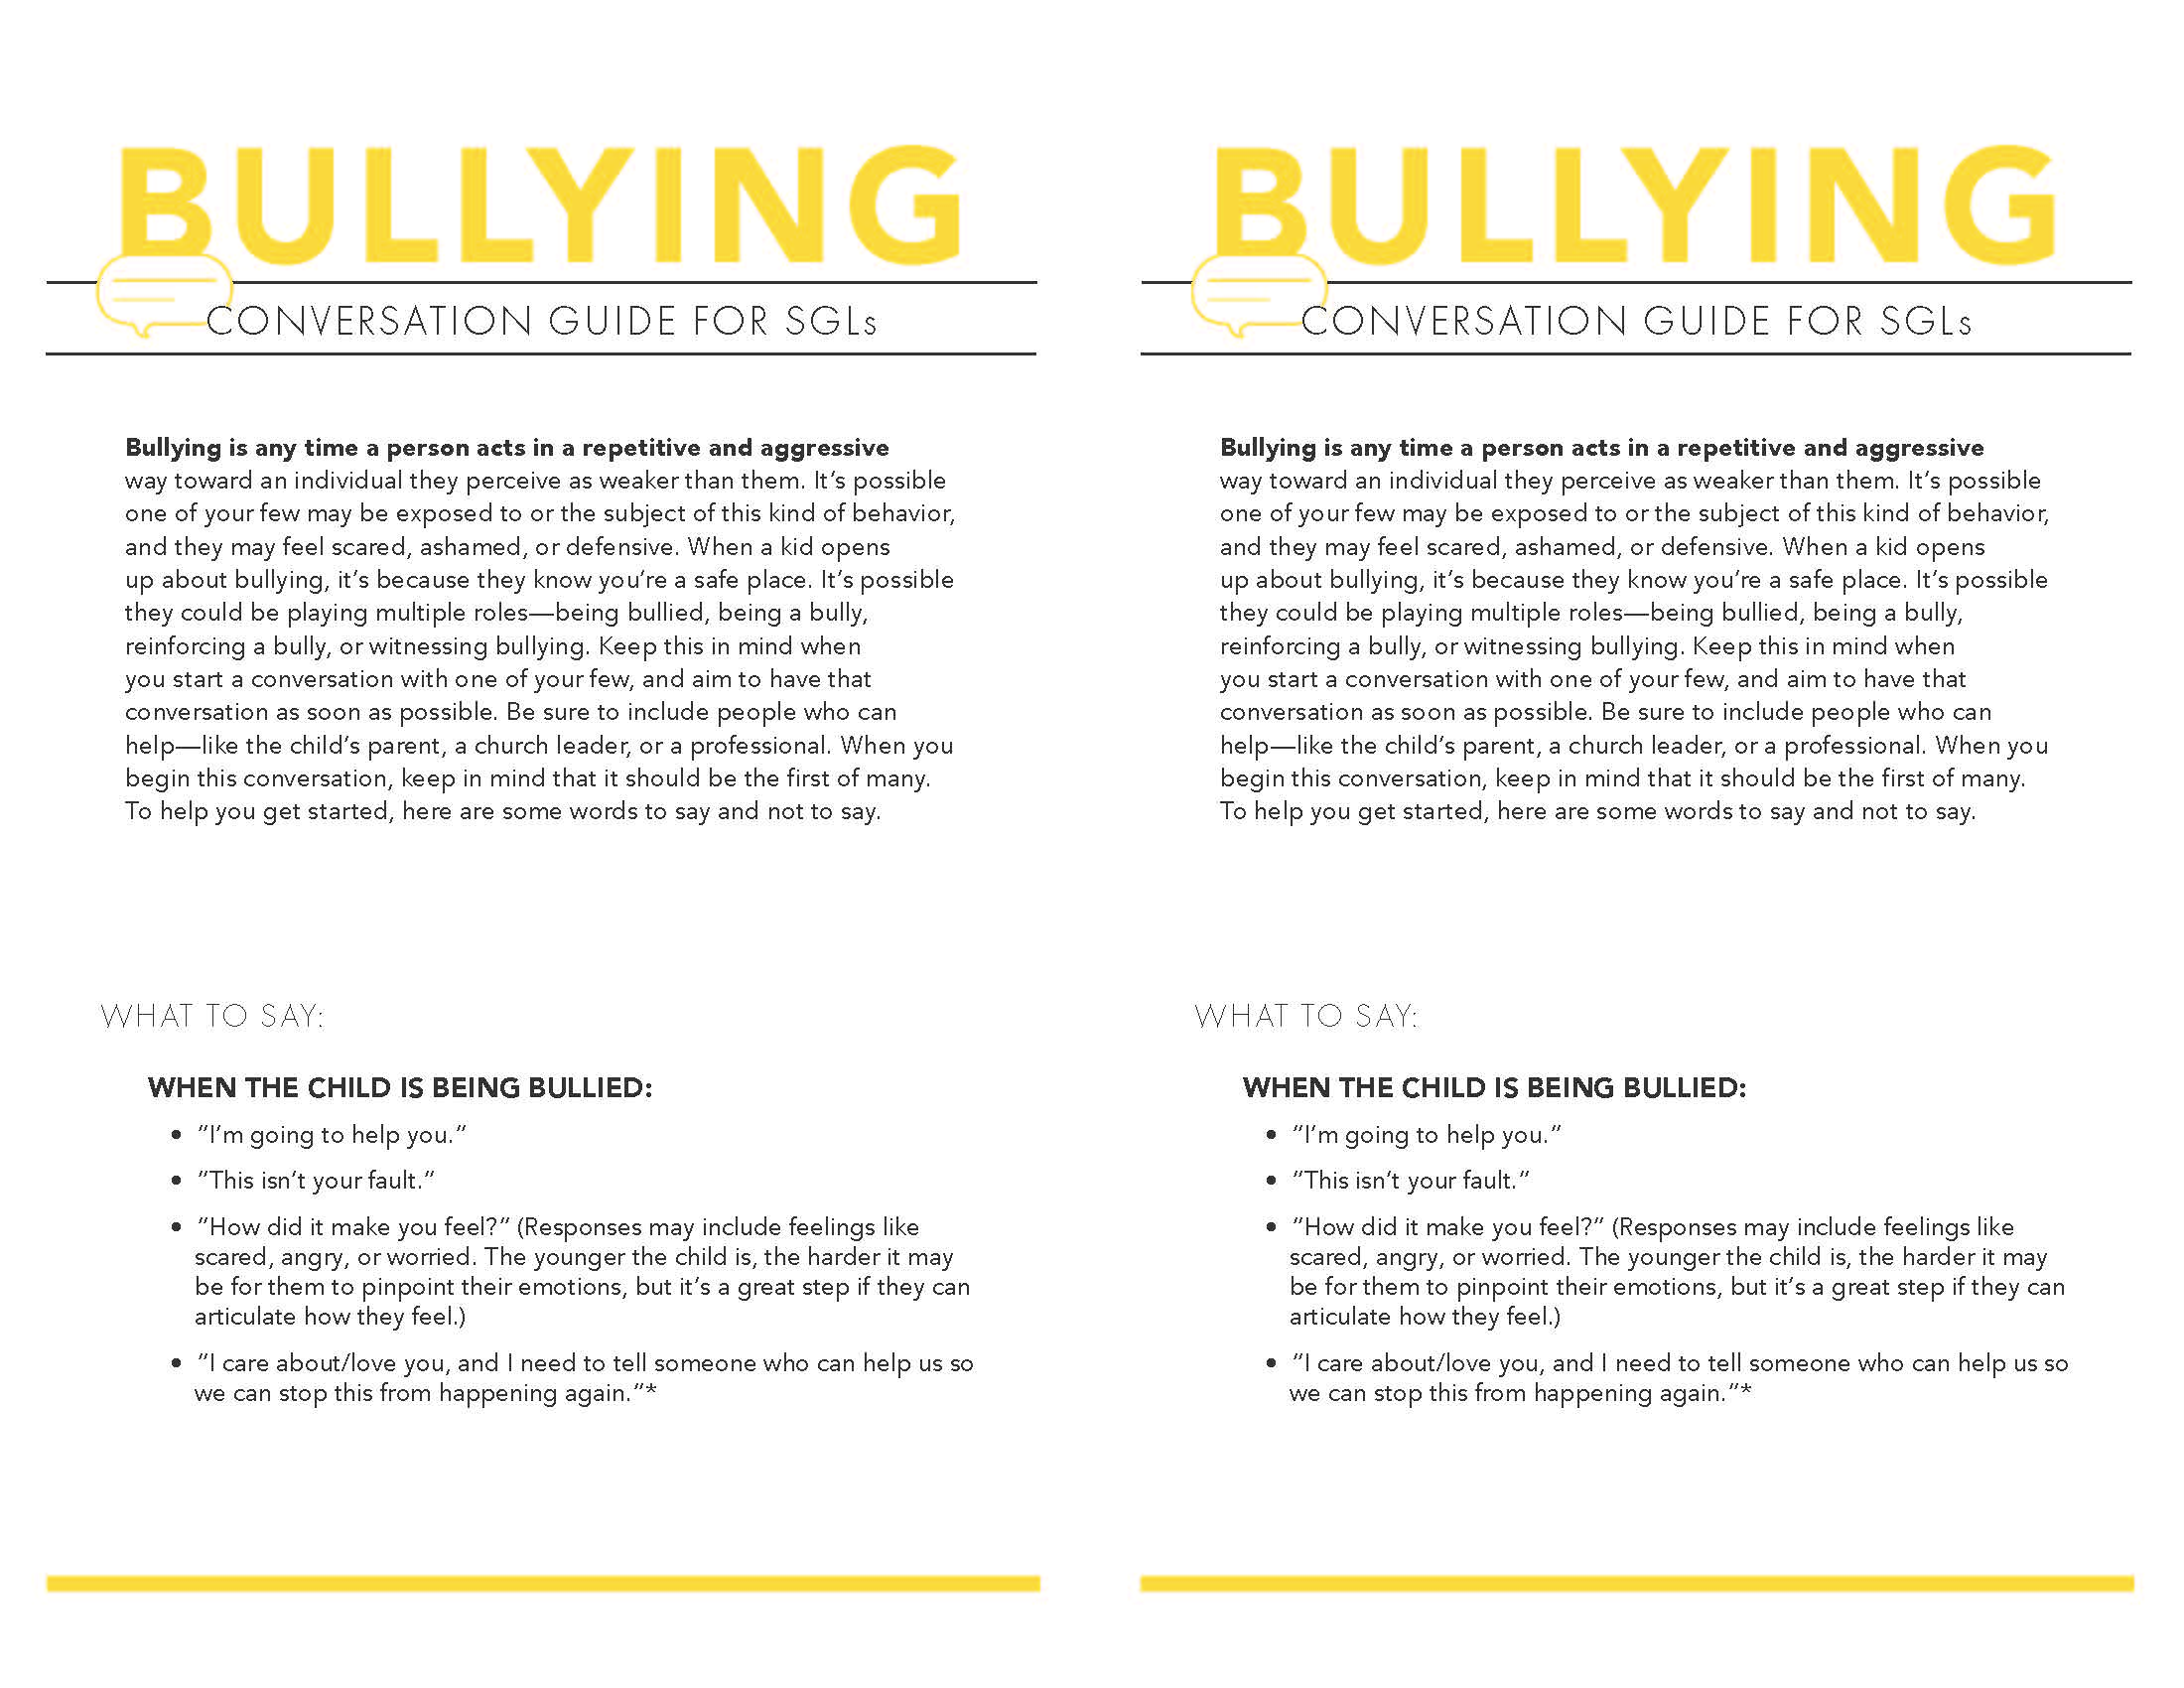 Bullying Page 1